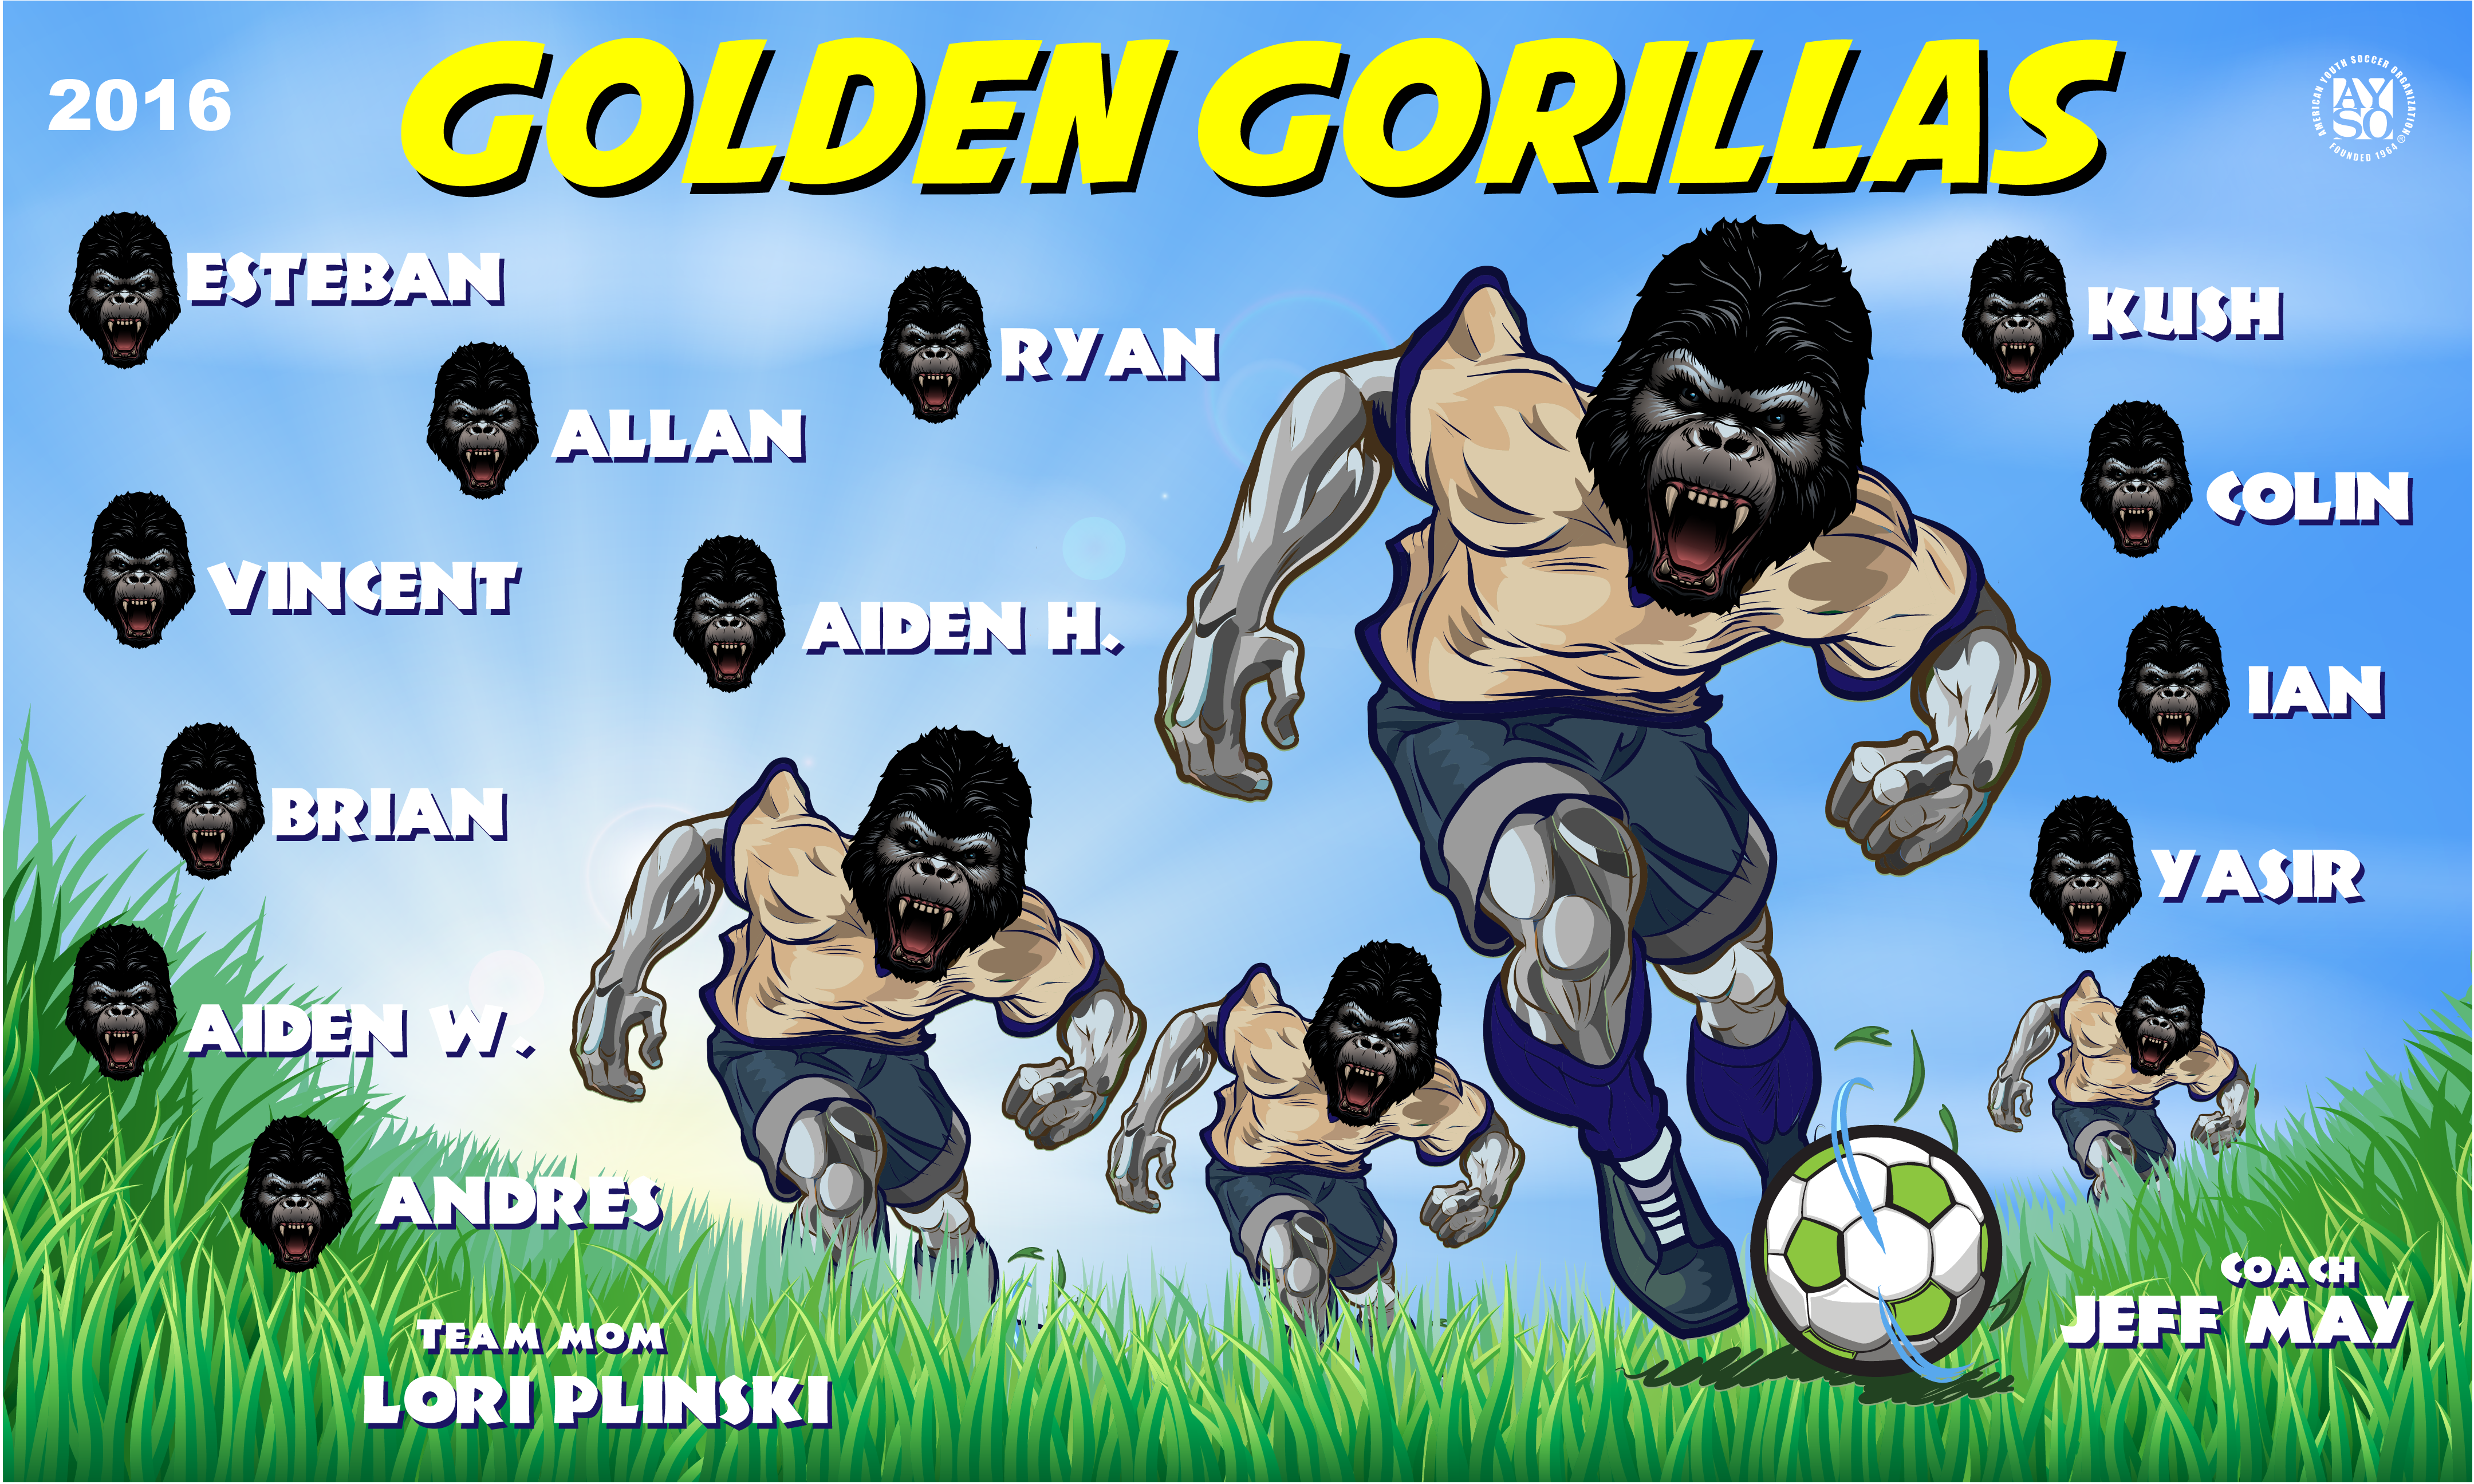 B1702 Golden Gorillas 3x5 Banner